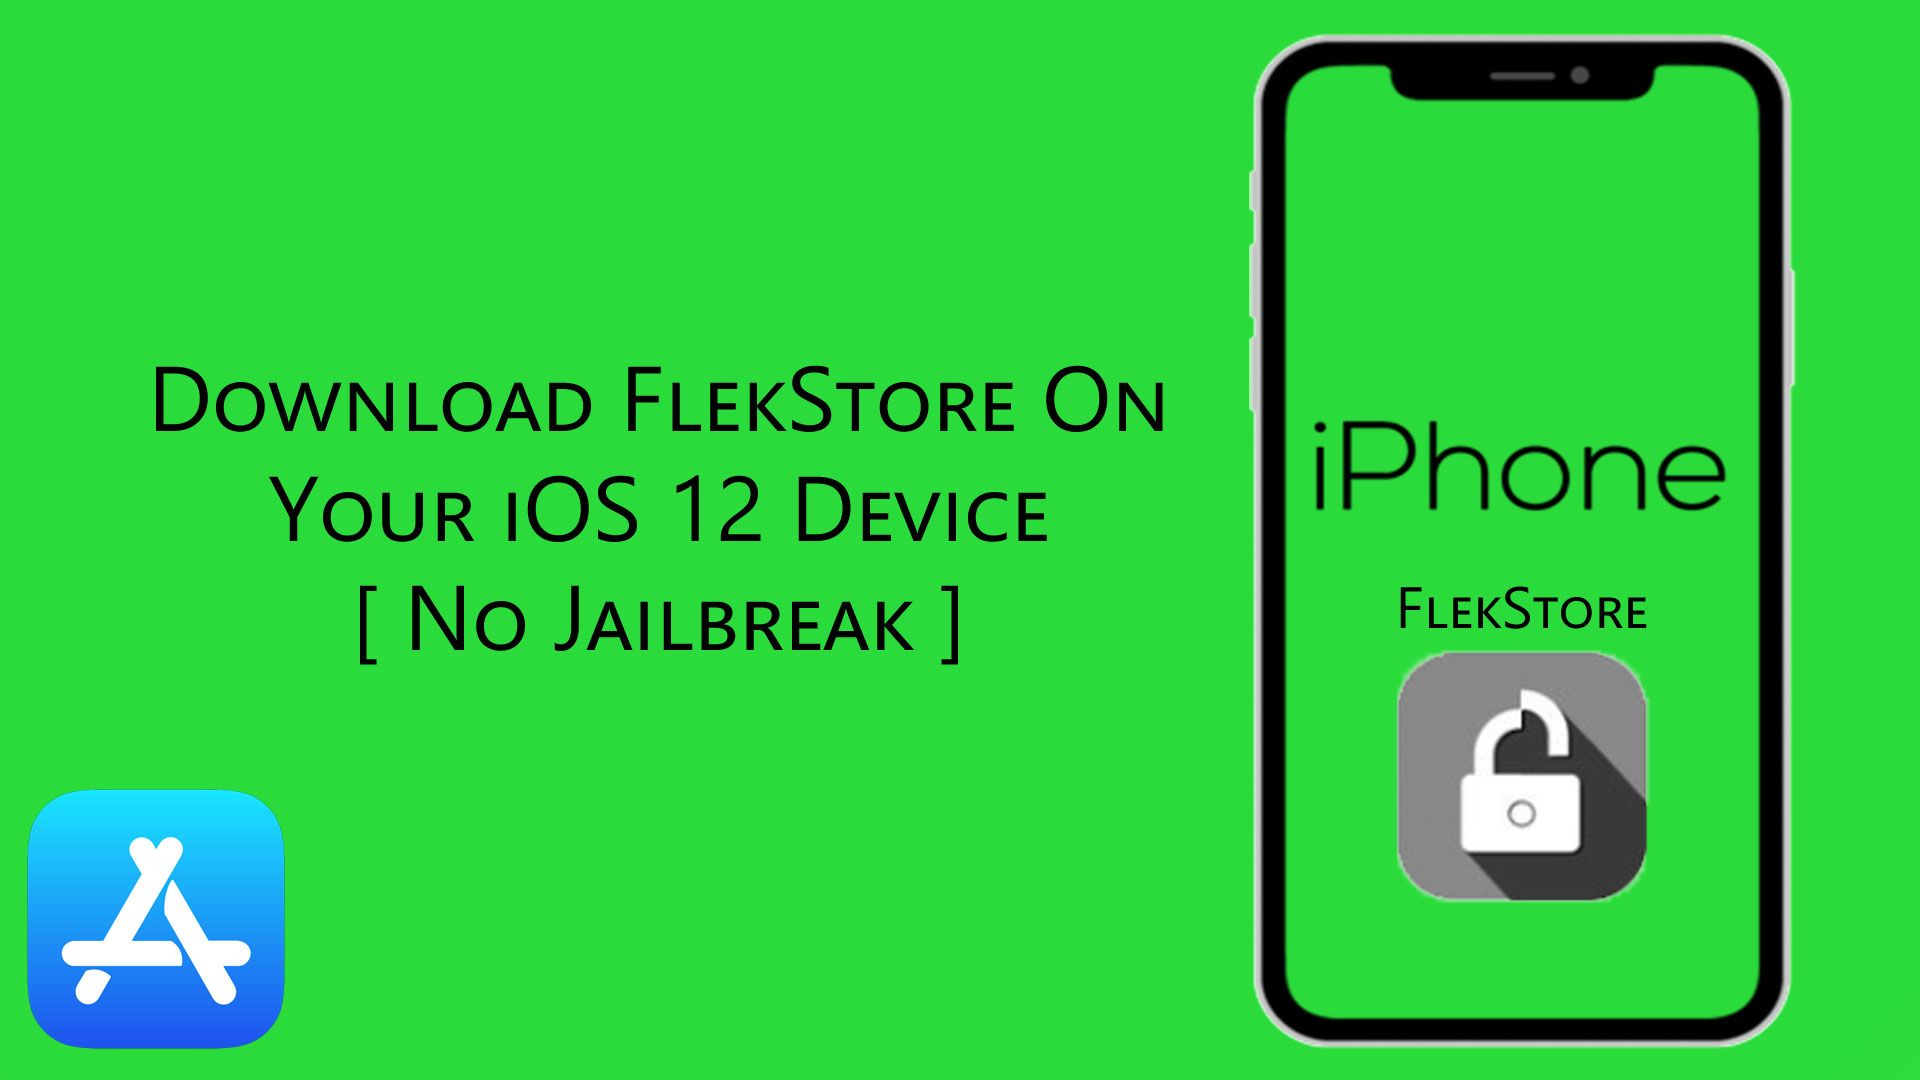 How to download FlekStore on iOS 12 without jailbreak